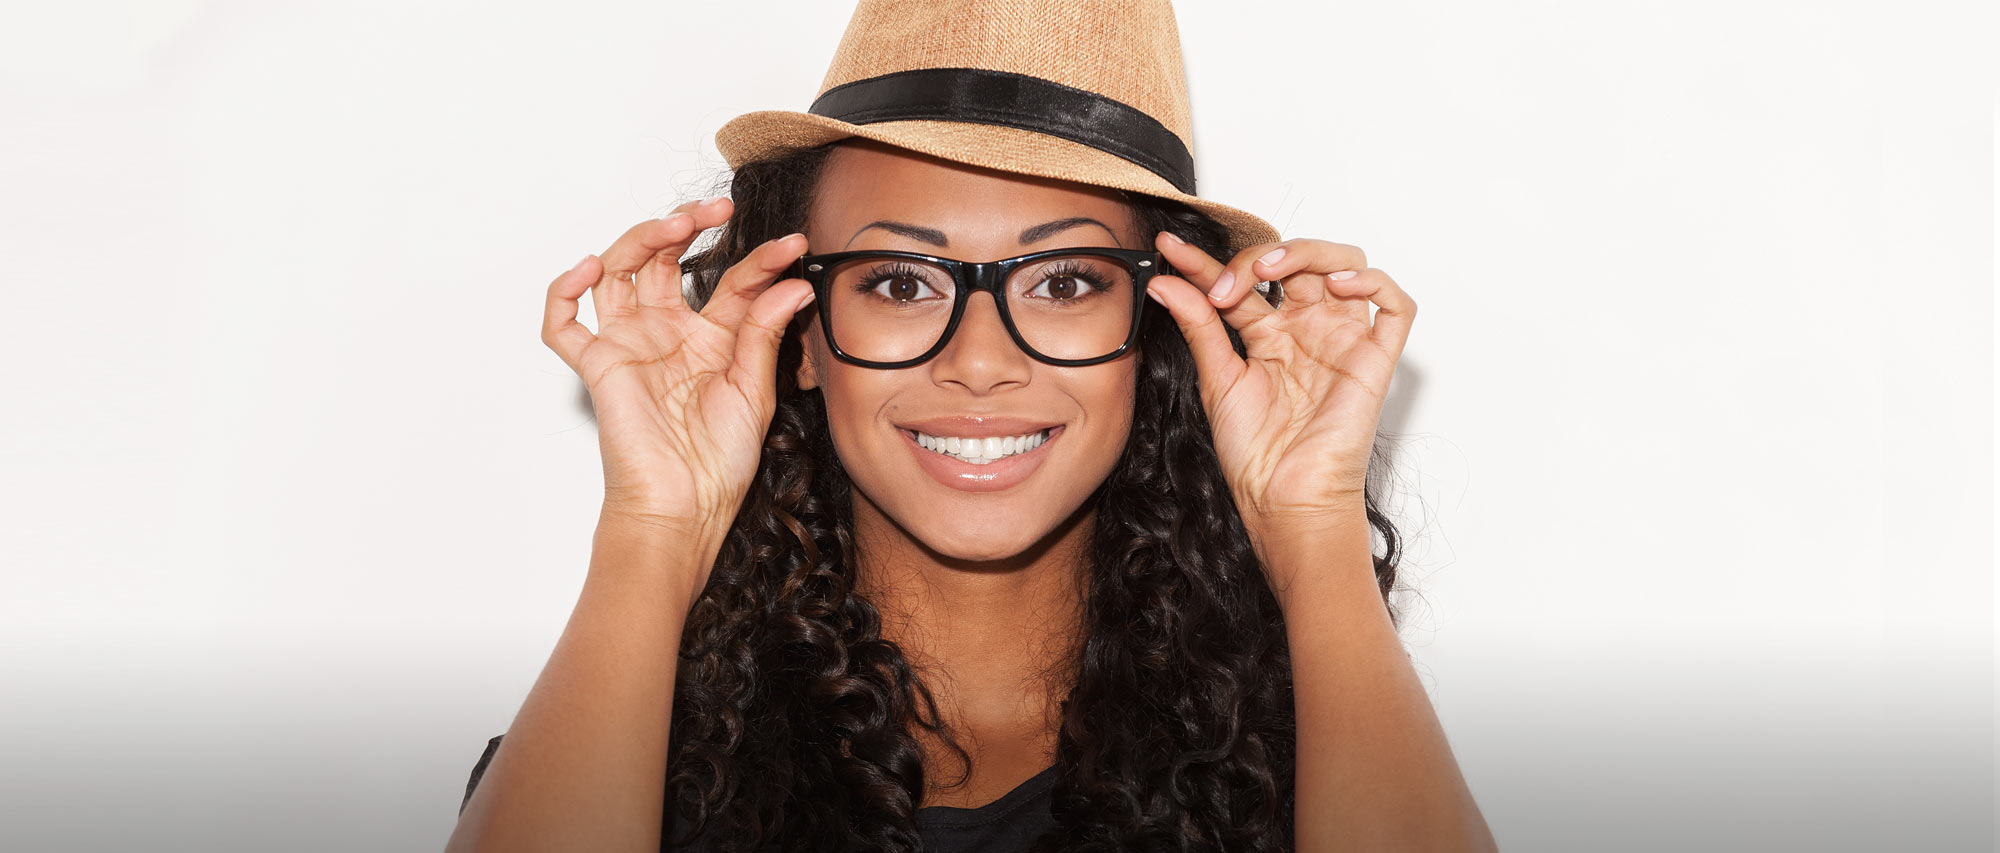 3dfd086075f1 Glasses On Smiling Woman 2000×853 lo